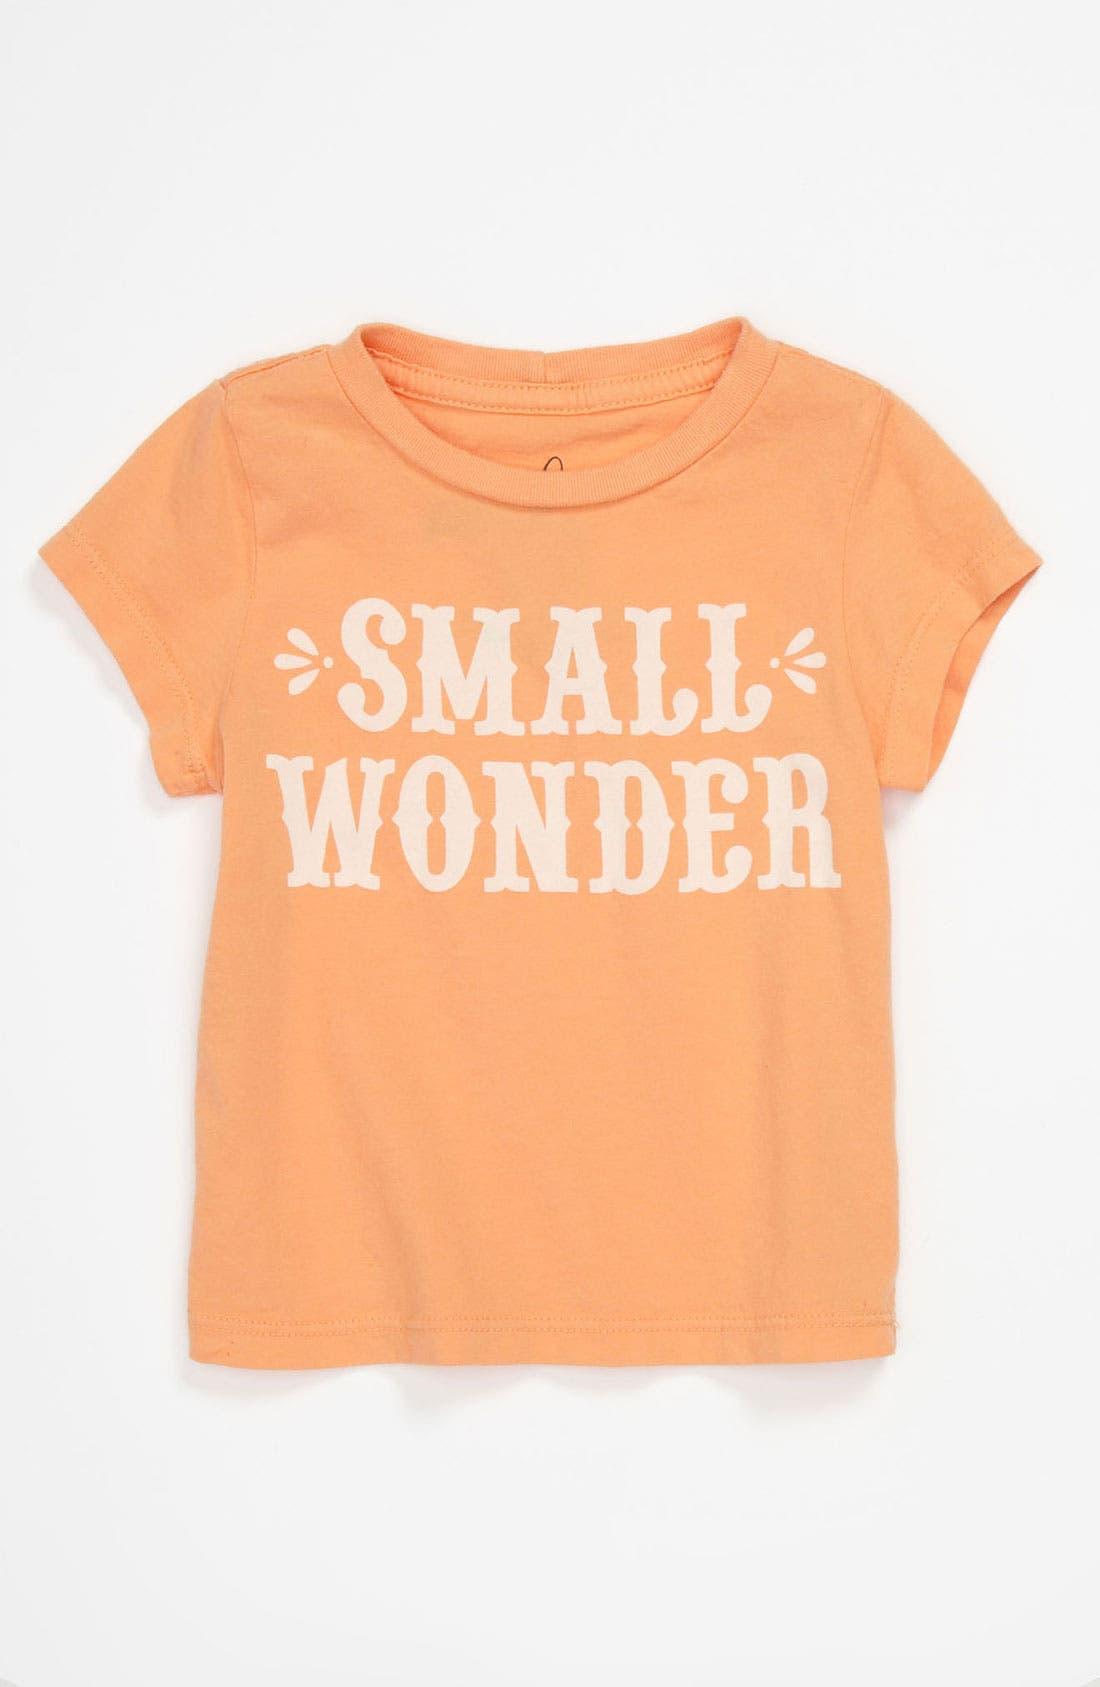 Alternate Image 1 Selected - Peek 'Small Wonder' T-Shirt (Baby)